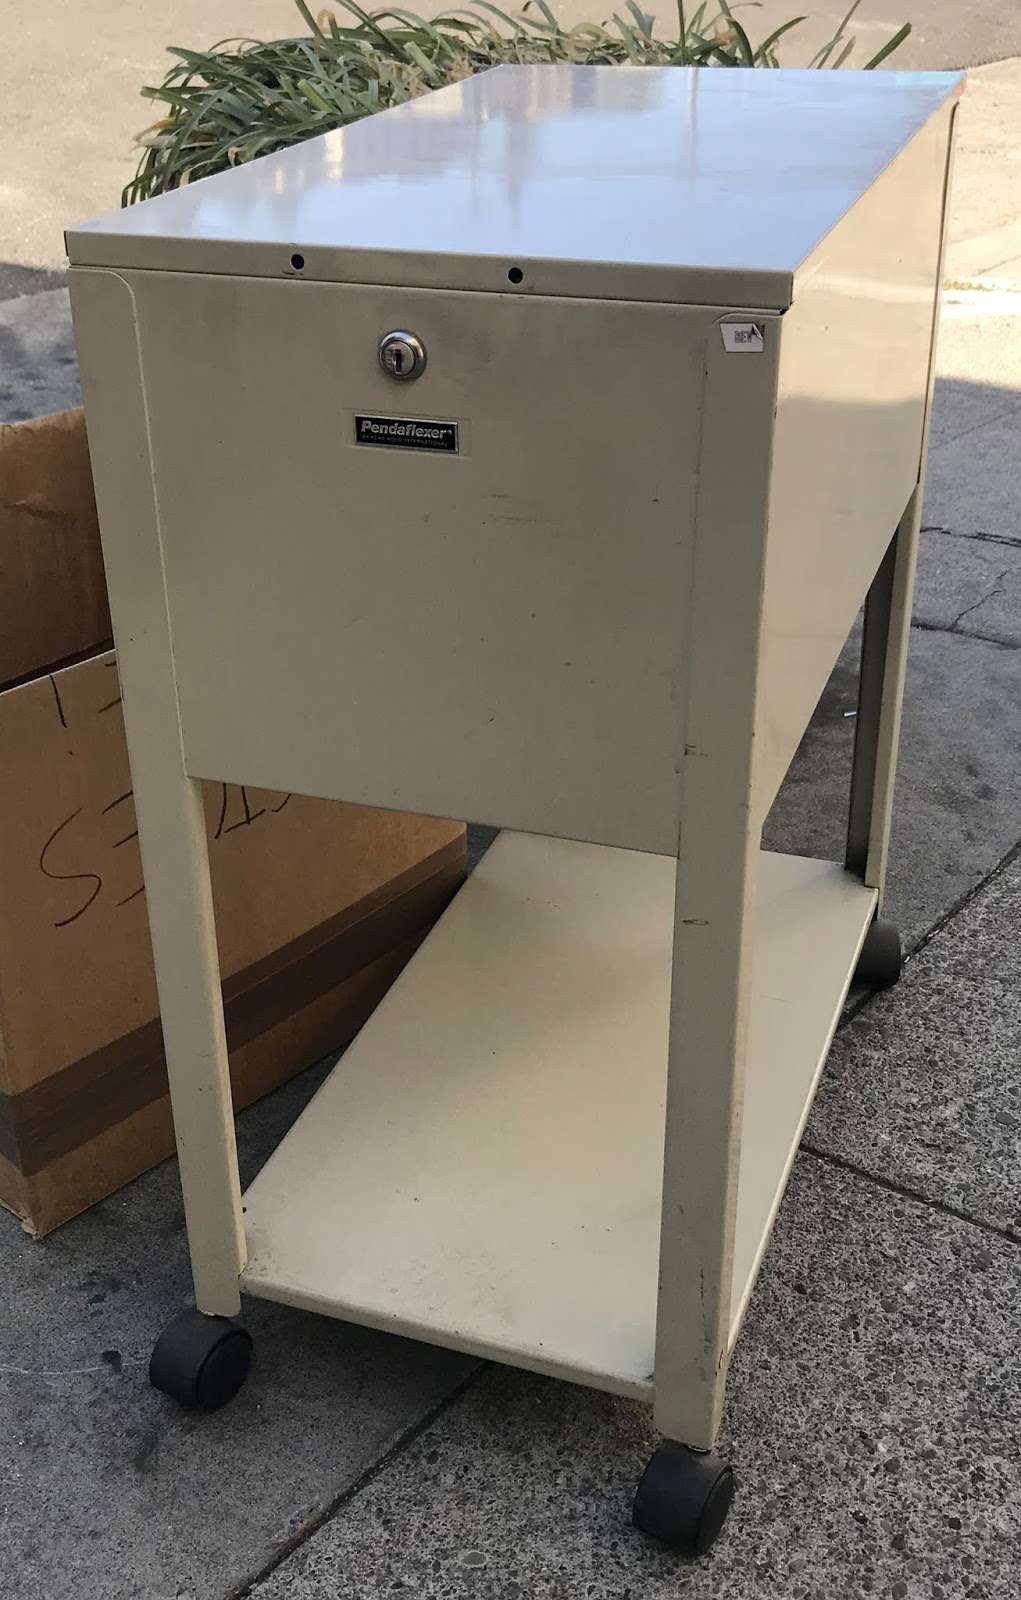 Sold 19515 Panda Flexer Top Loading Hanging File Cabinet On Wheels 20